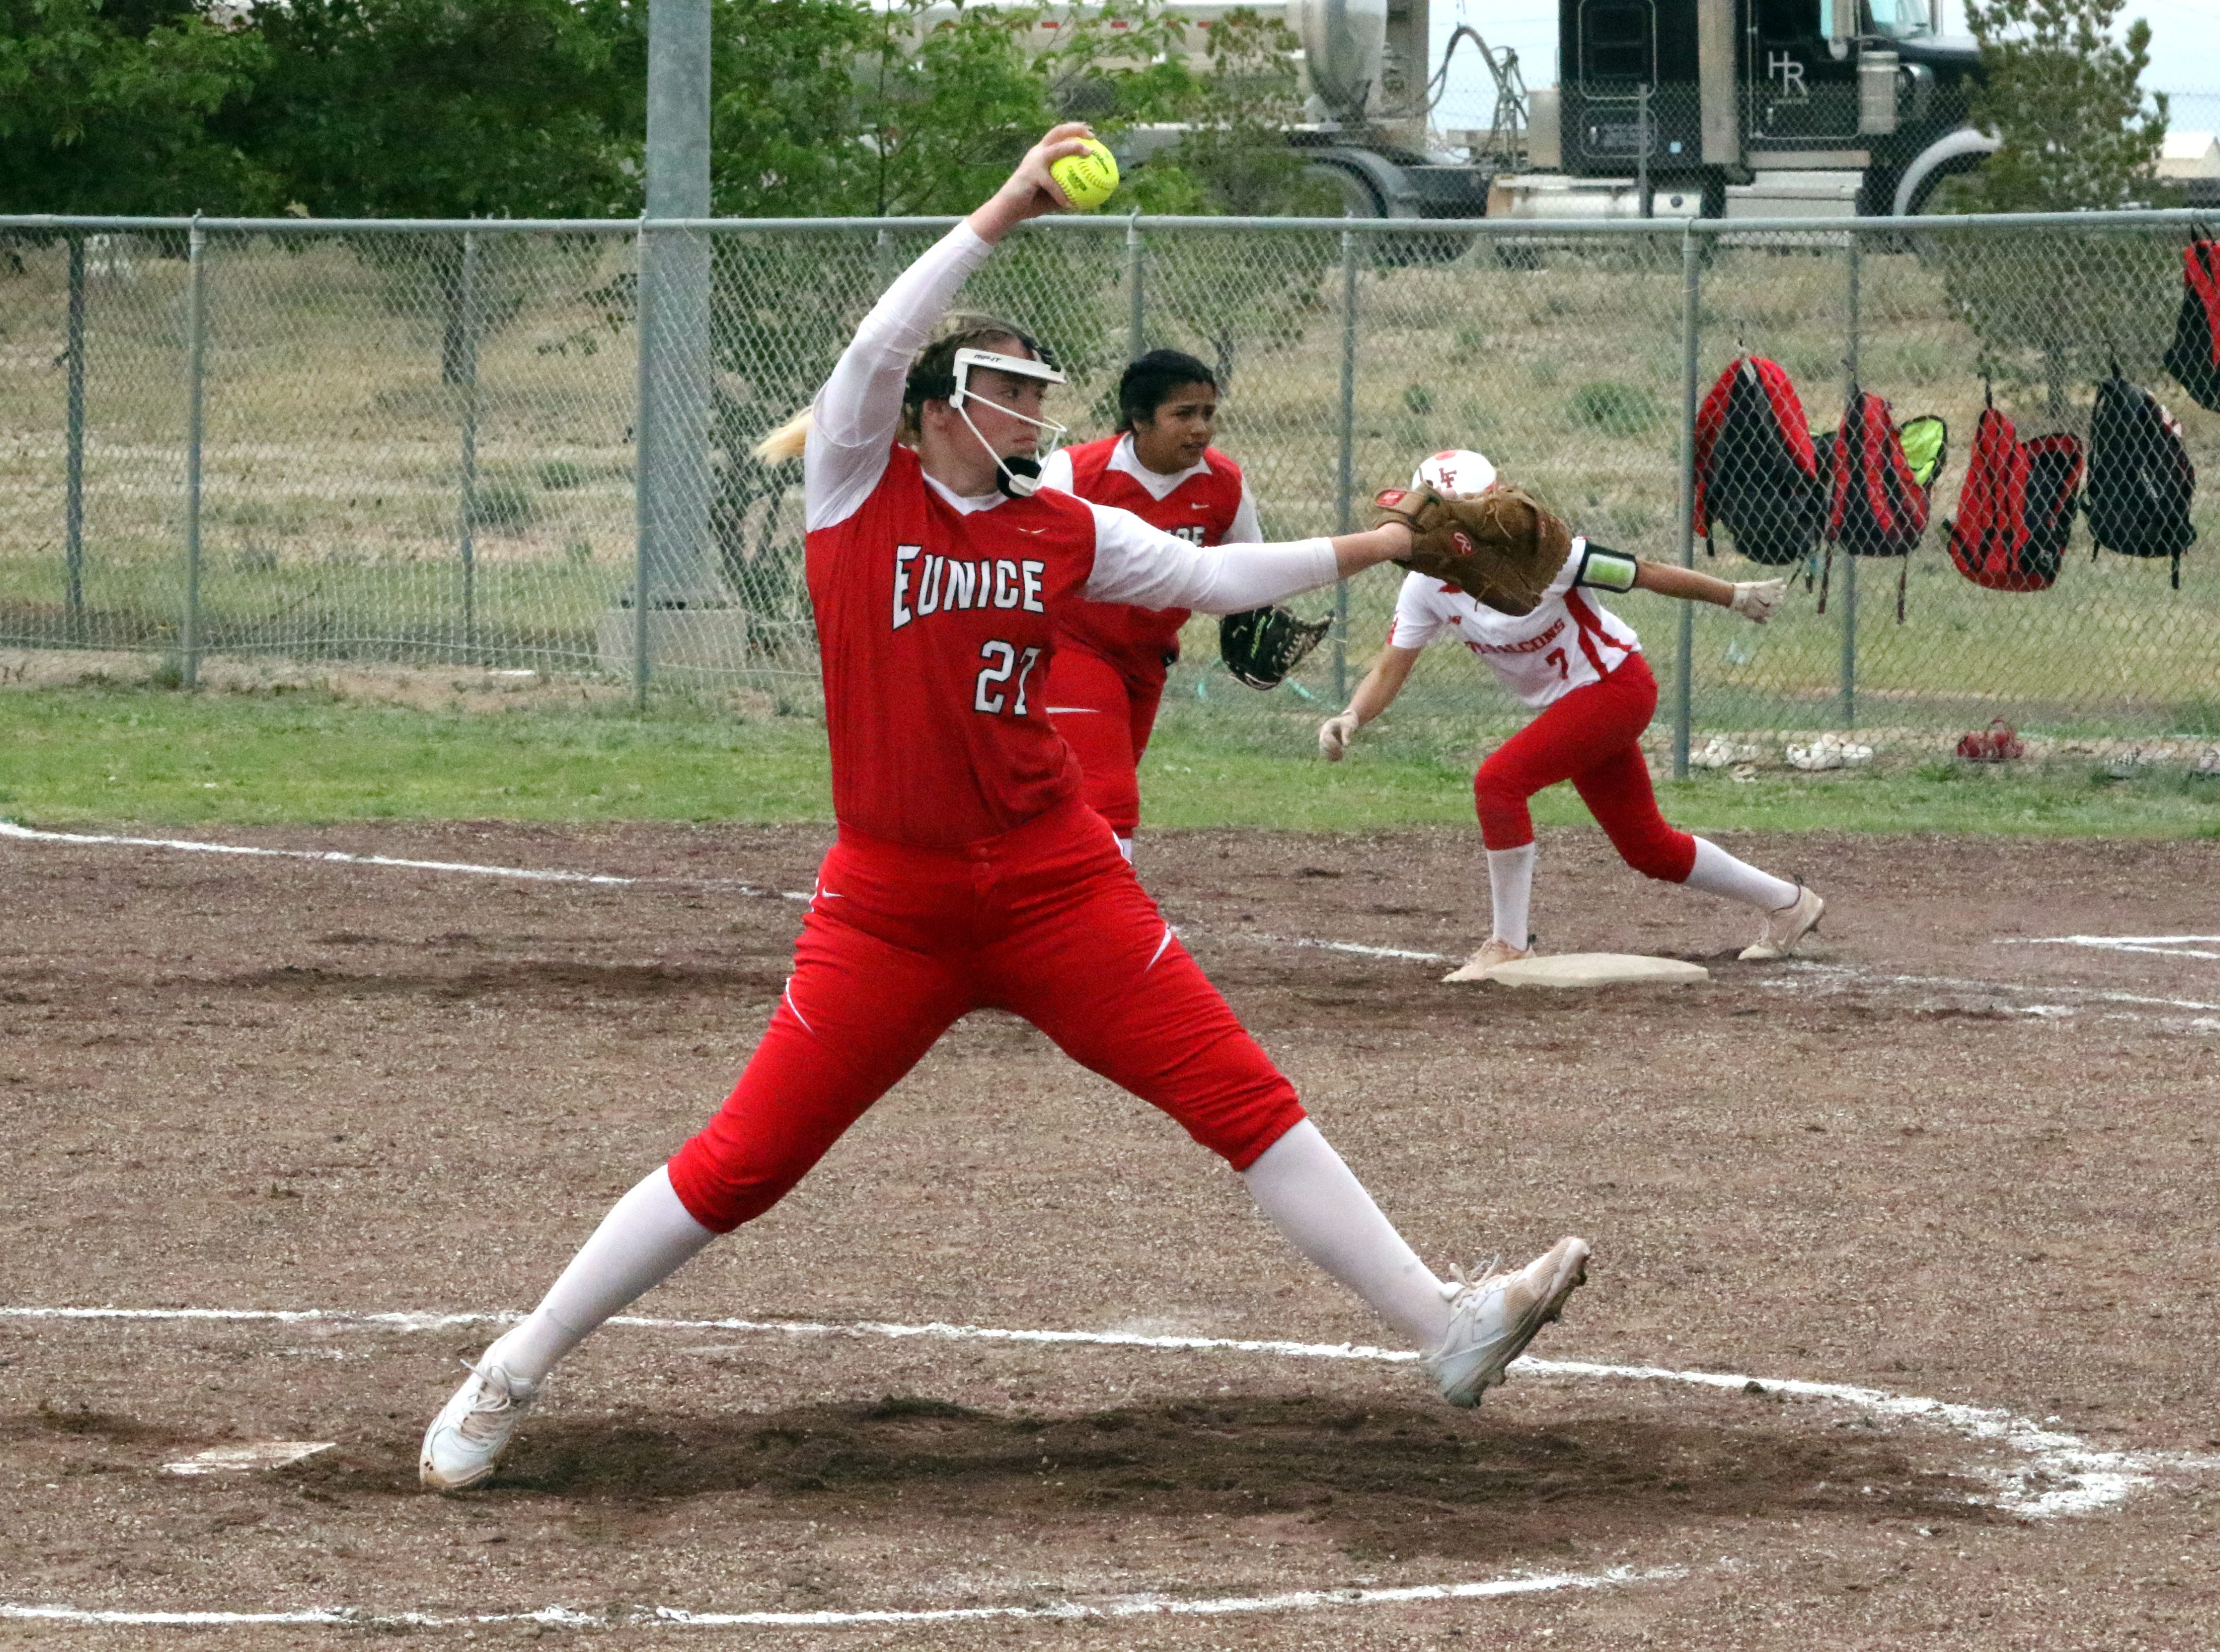 Reegan Wilson pitches during Saturday's doubleheader. She threw both games for Eunice. The Lady Cardinals won Game 1, 13-12 and Loving won Game 2, 16-6.